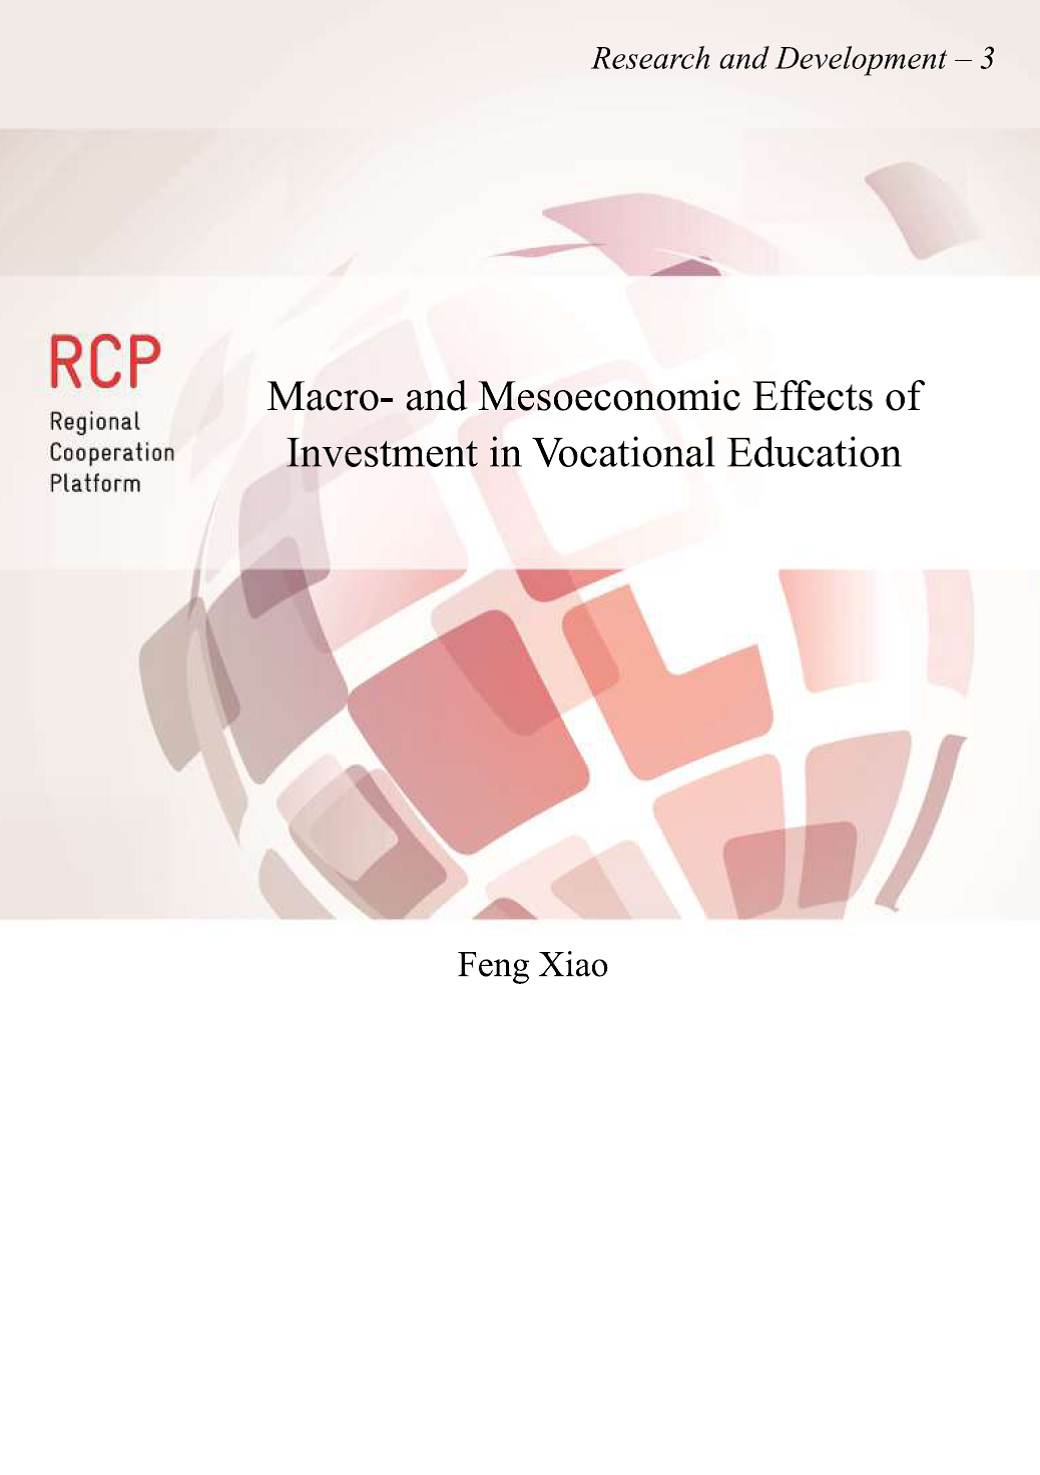 Macro- and Mesoeconomic Effects of Investment in Vocational Education